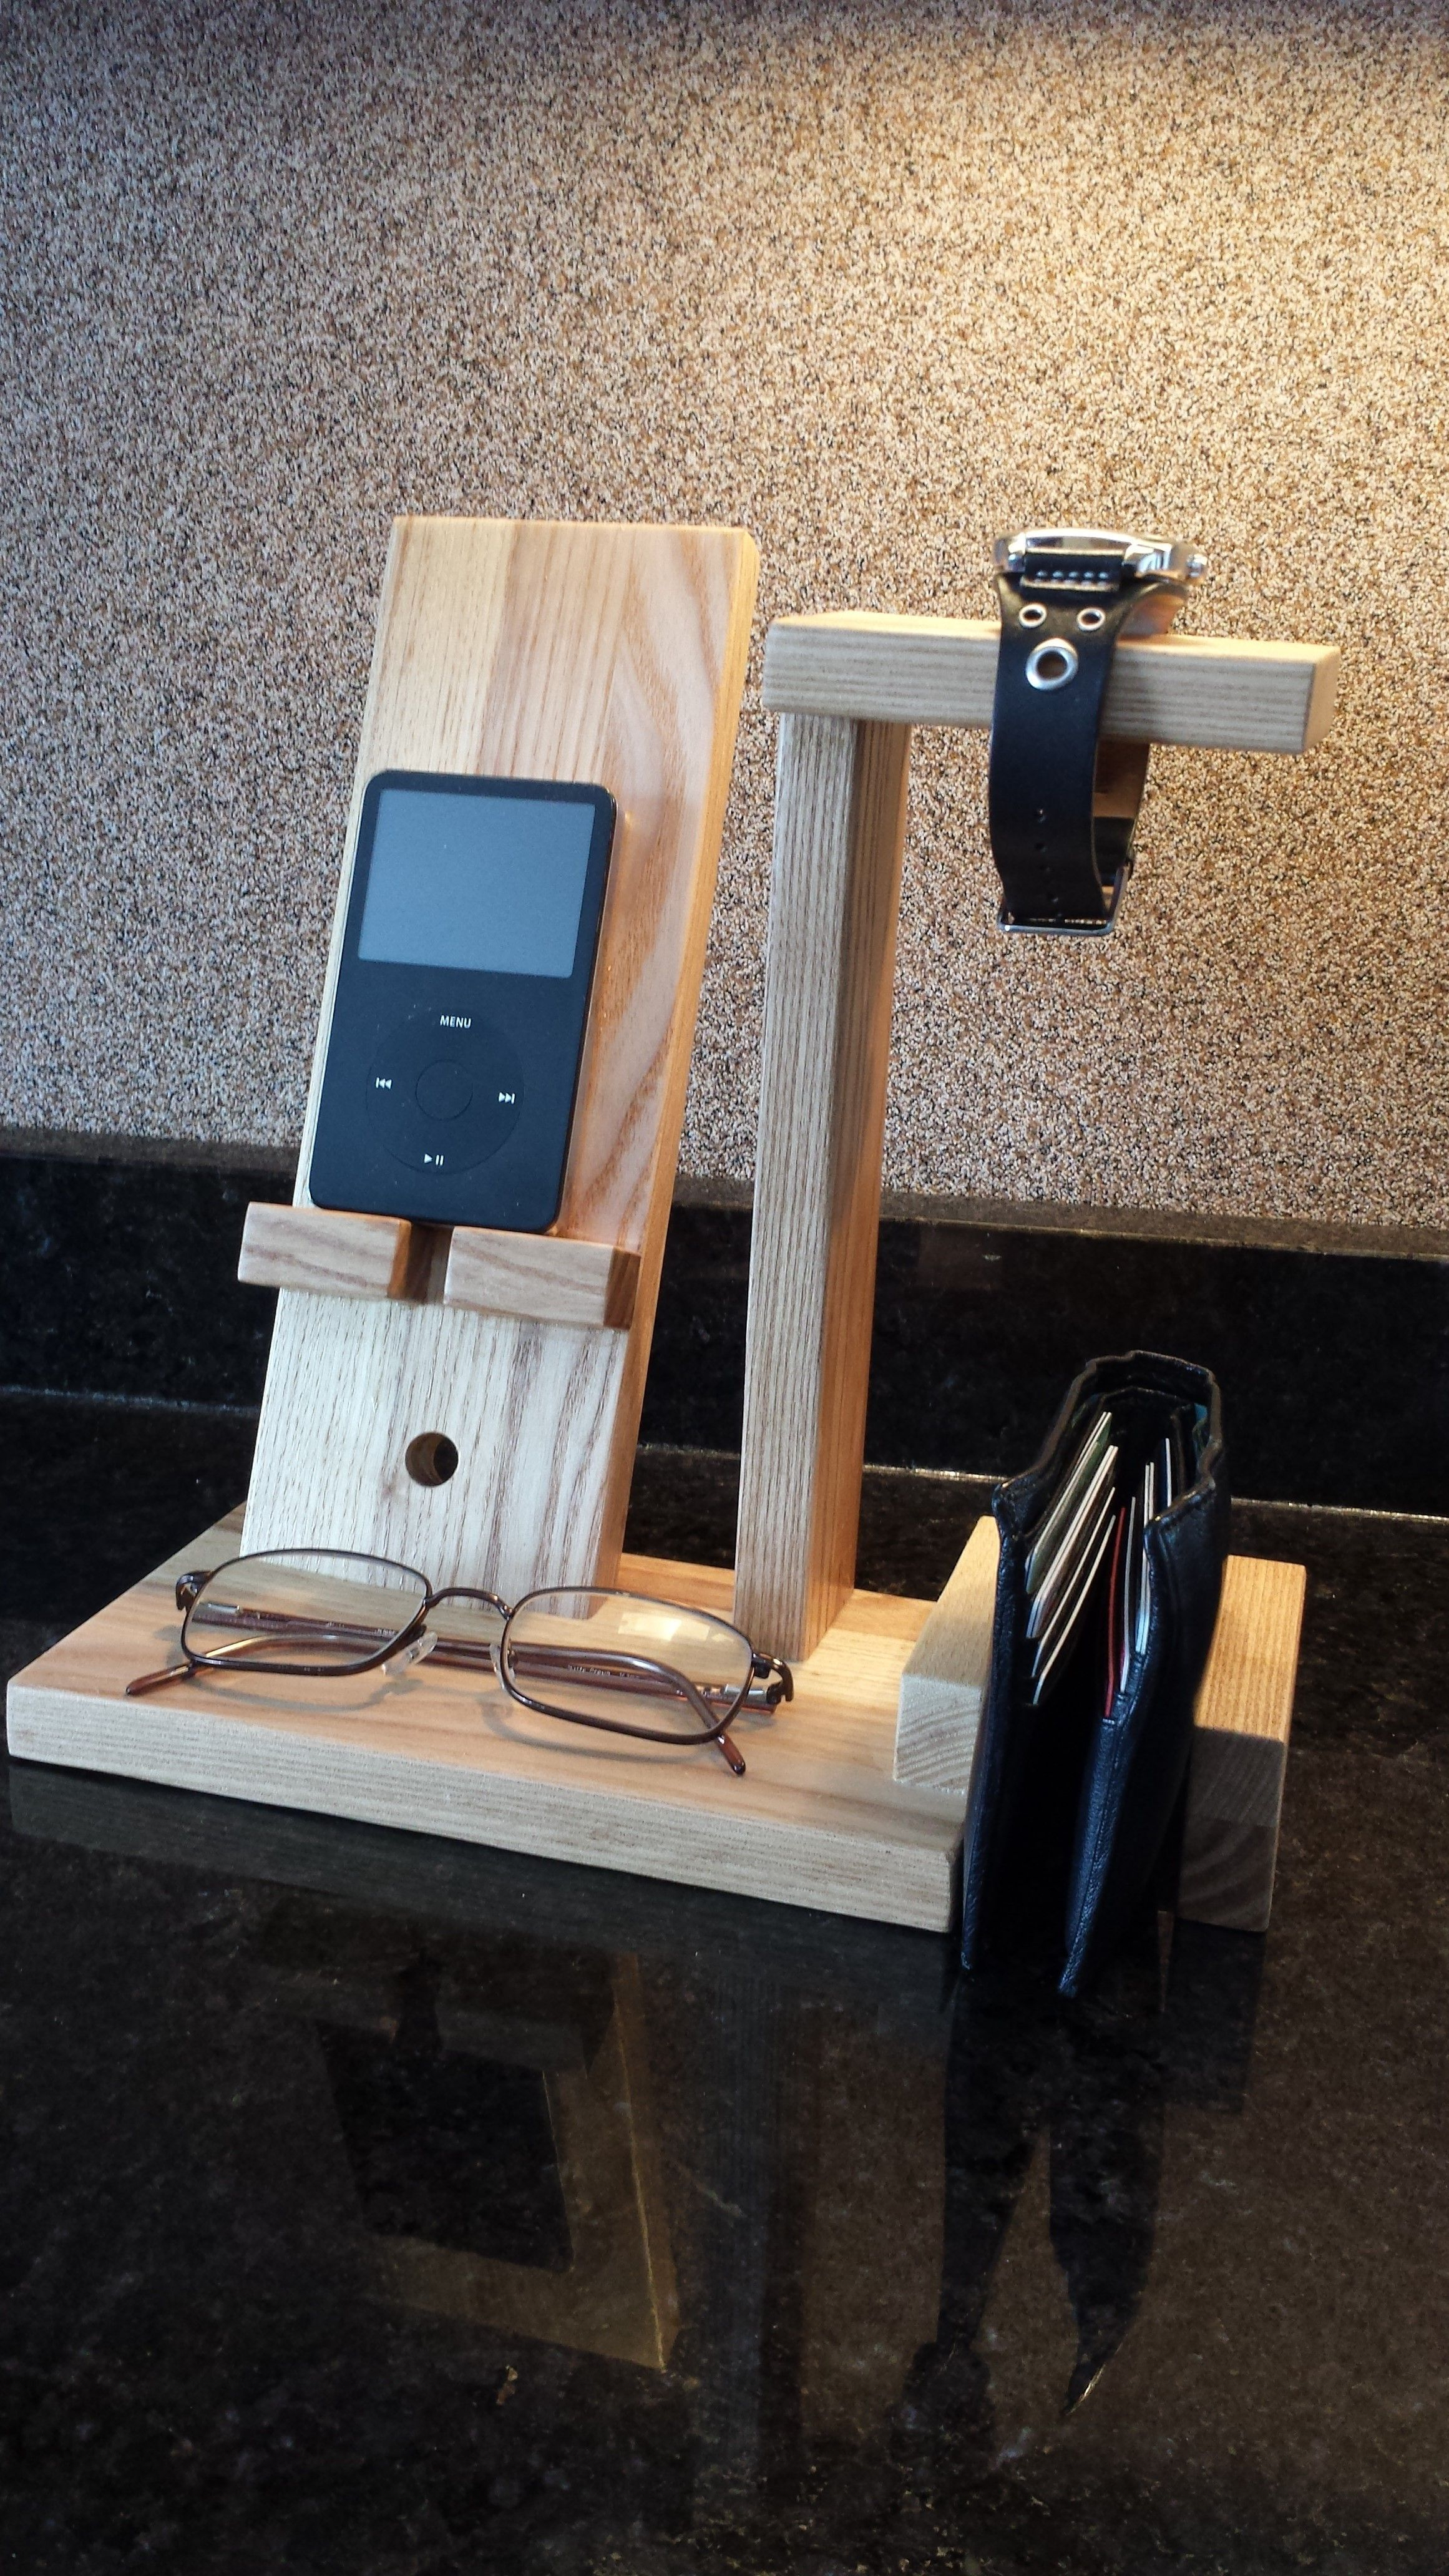 Cell Phone Stand Charging Station In 2020 Diy Phone Stand Diy Phone Wooden Diy